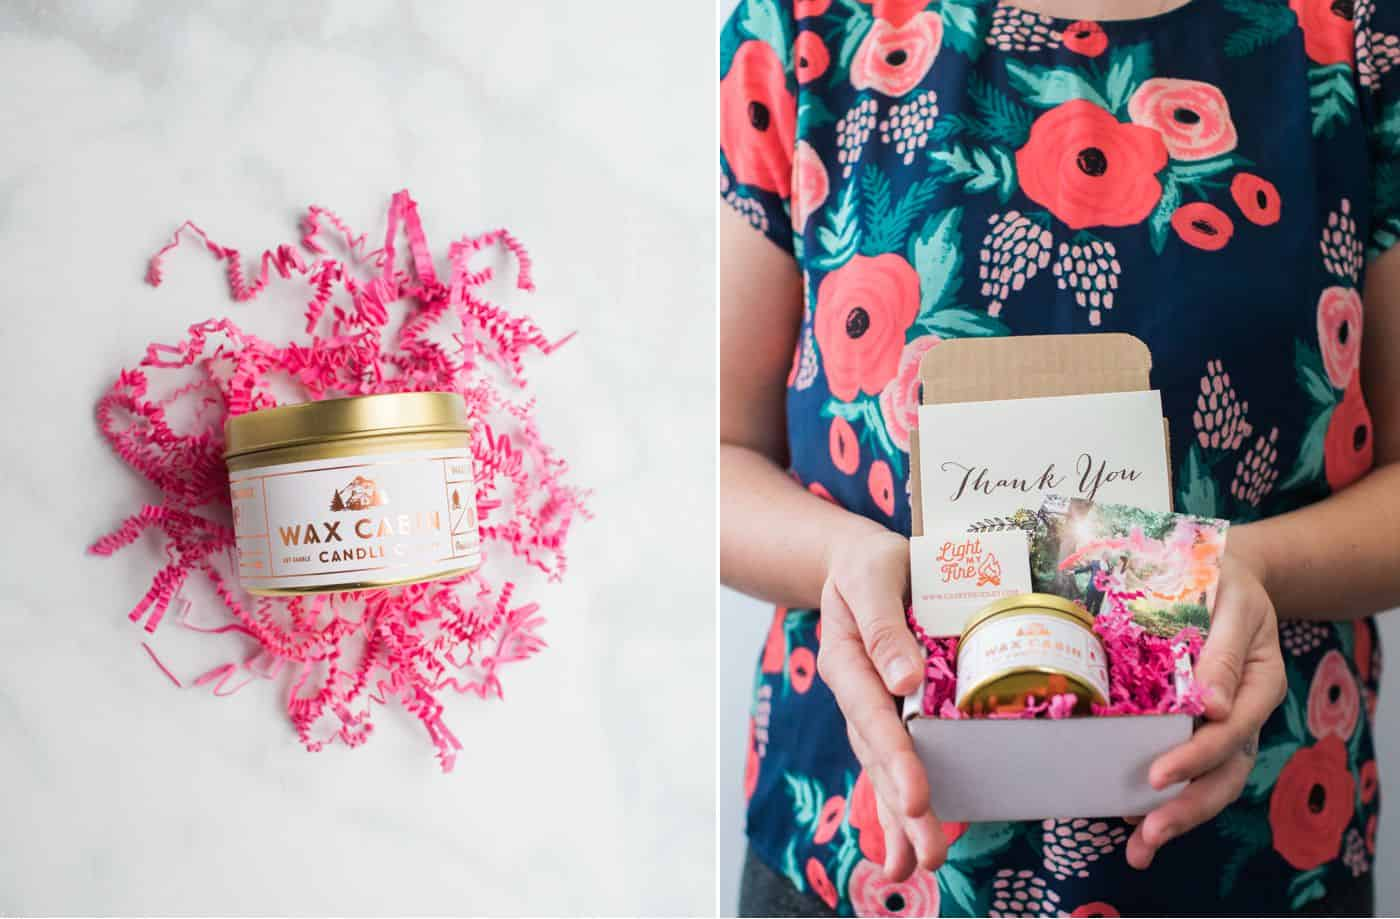 These Custom Client Gifts Melted Our Hearts Into Little Puddles Of Joy